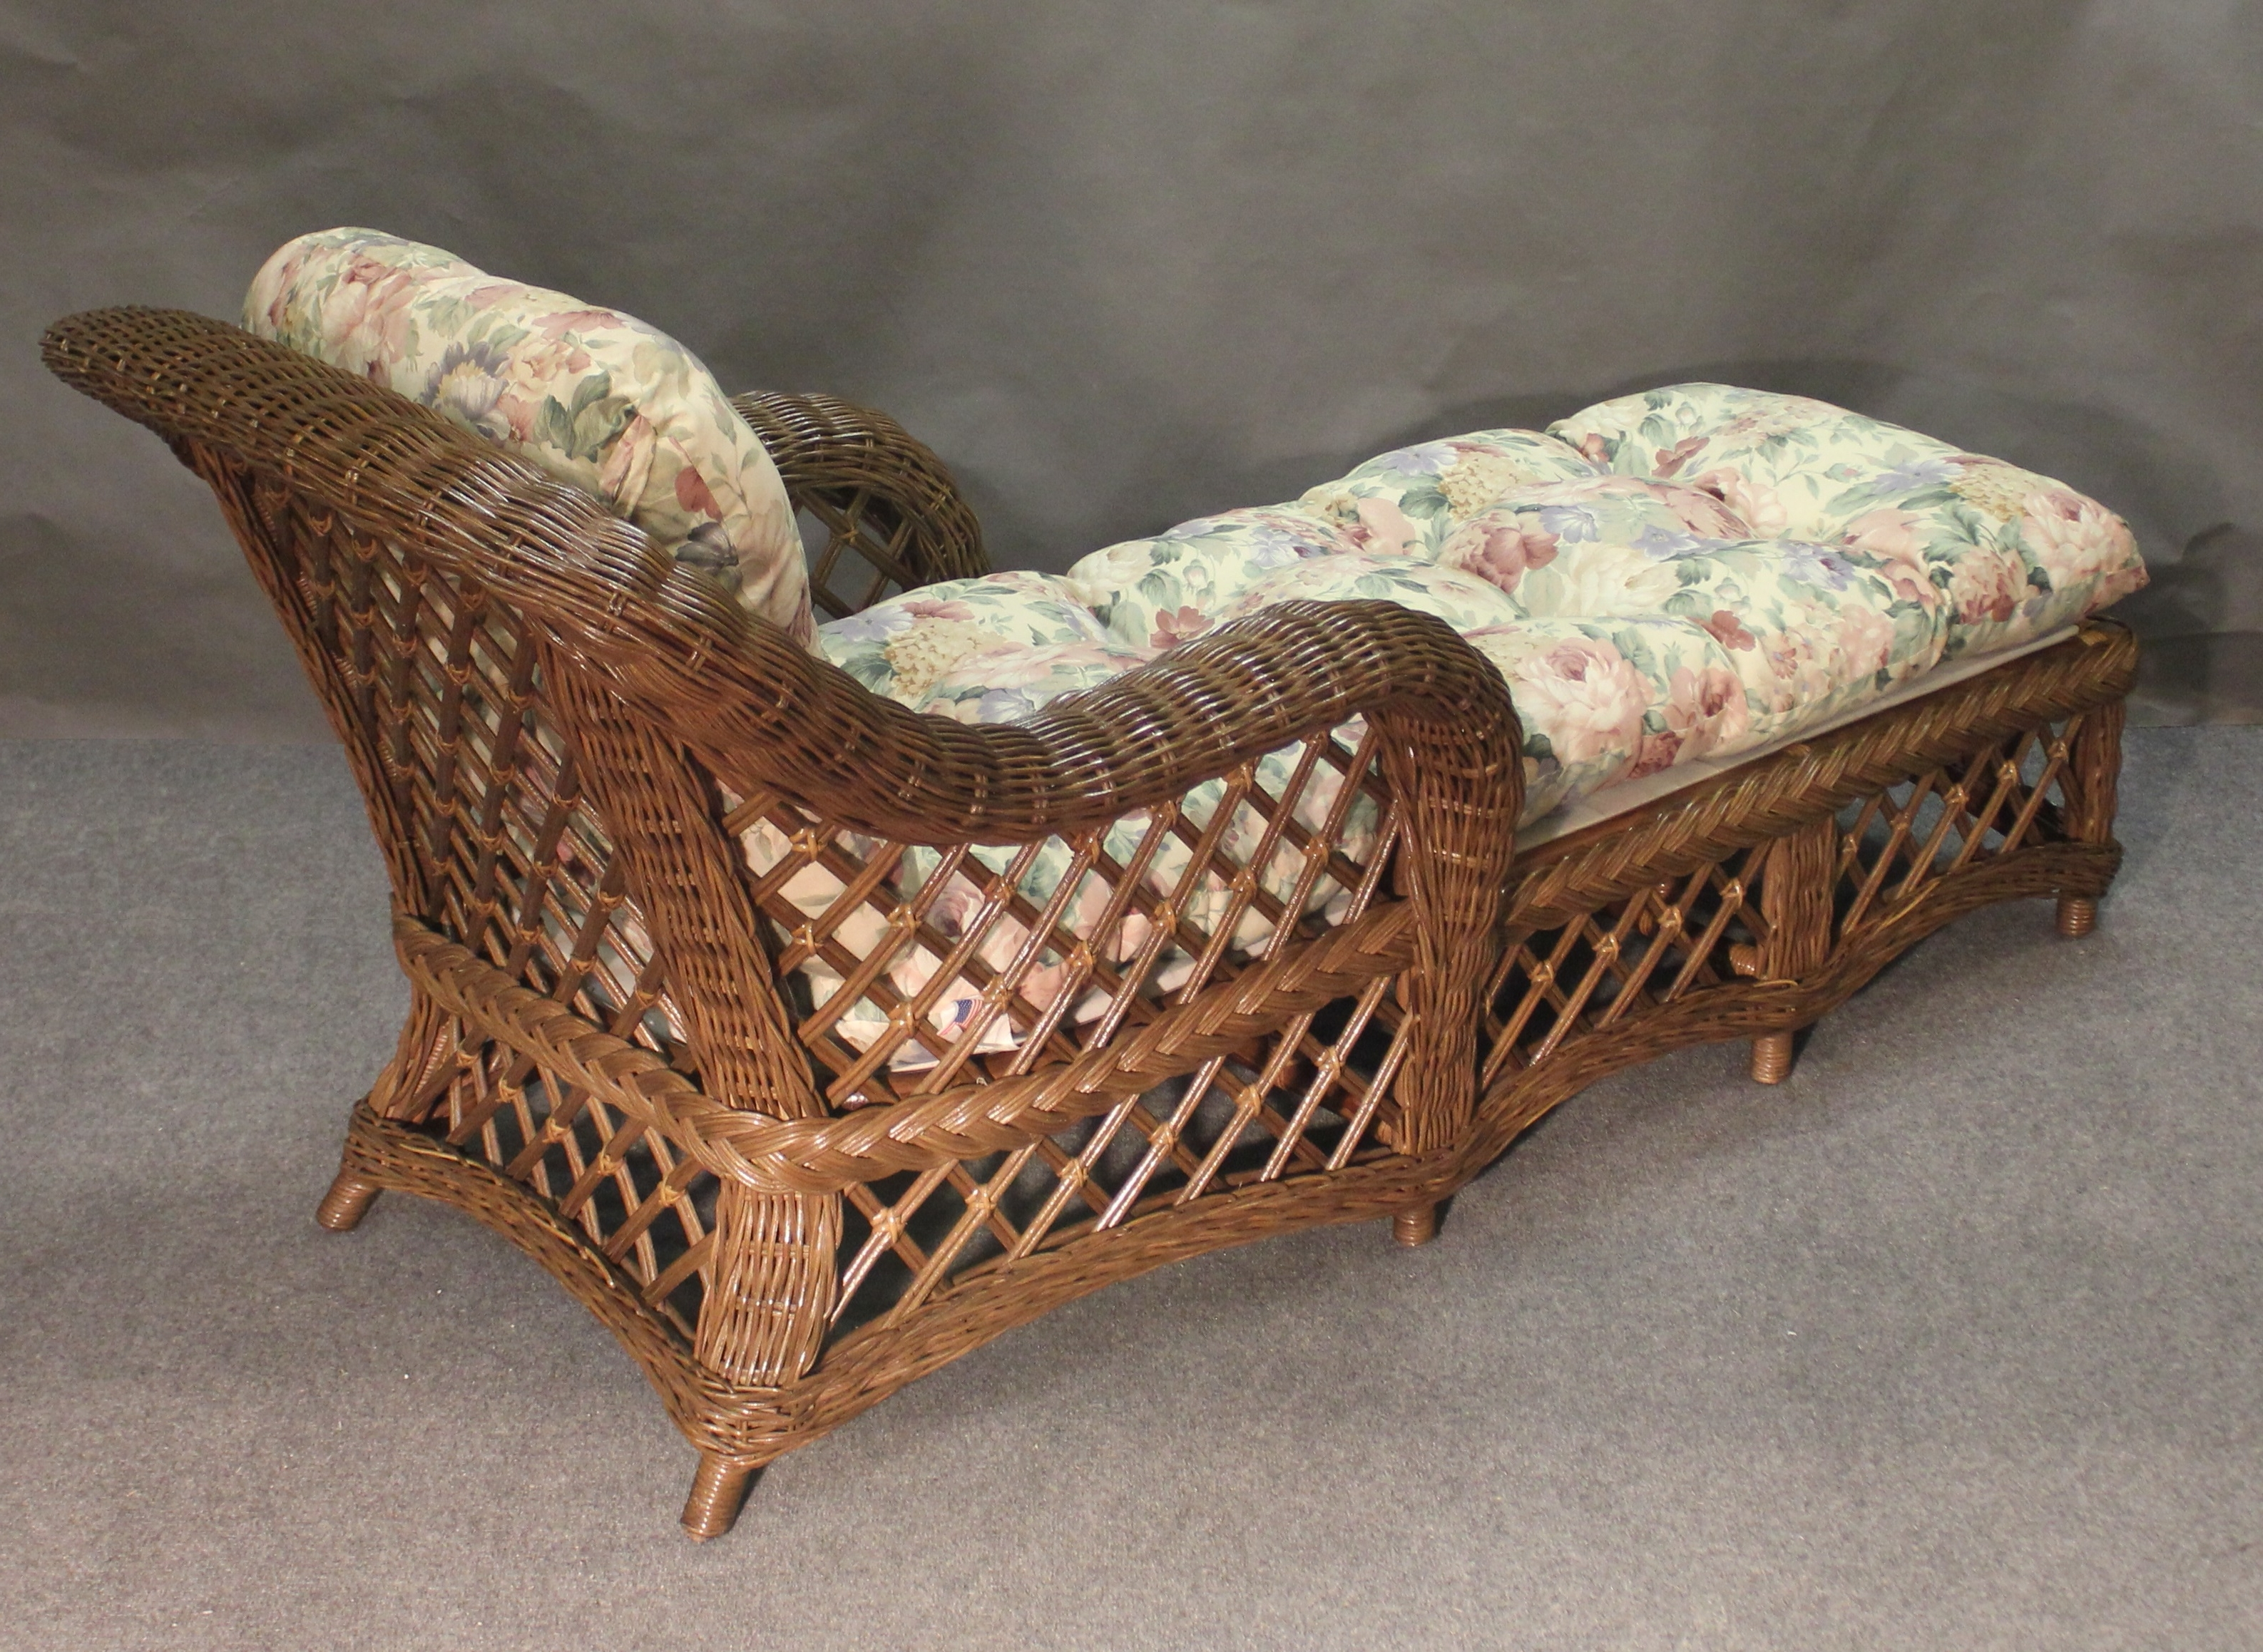 Current Cape Cod Wicker Chaise Lounge, All About Wicker With Regard To Wicker Chaises (View 2 of 15)